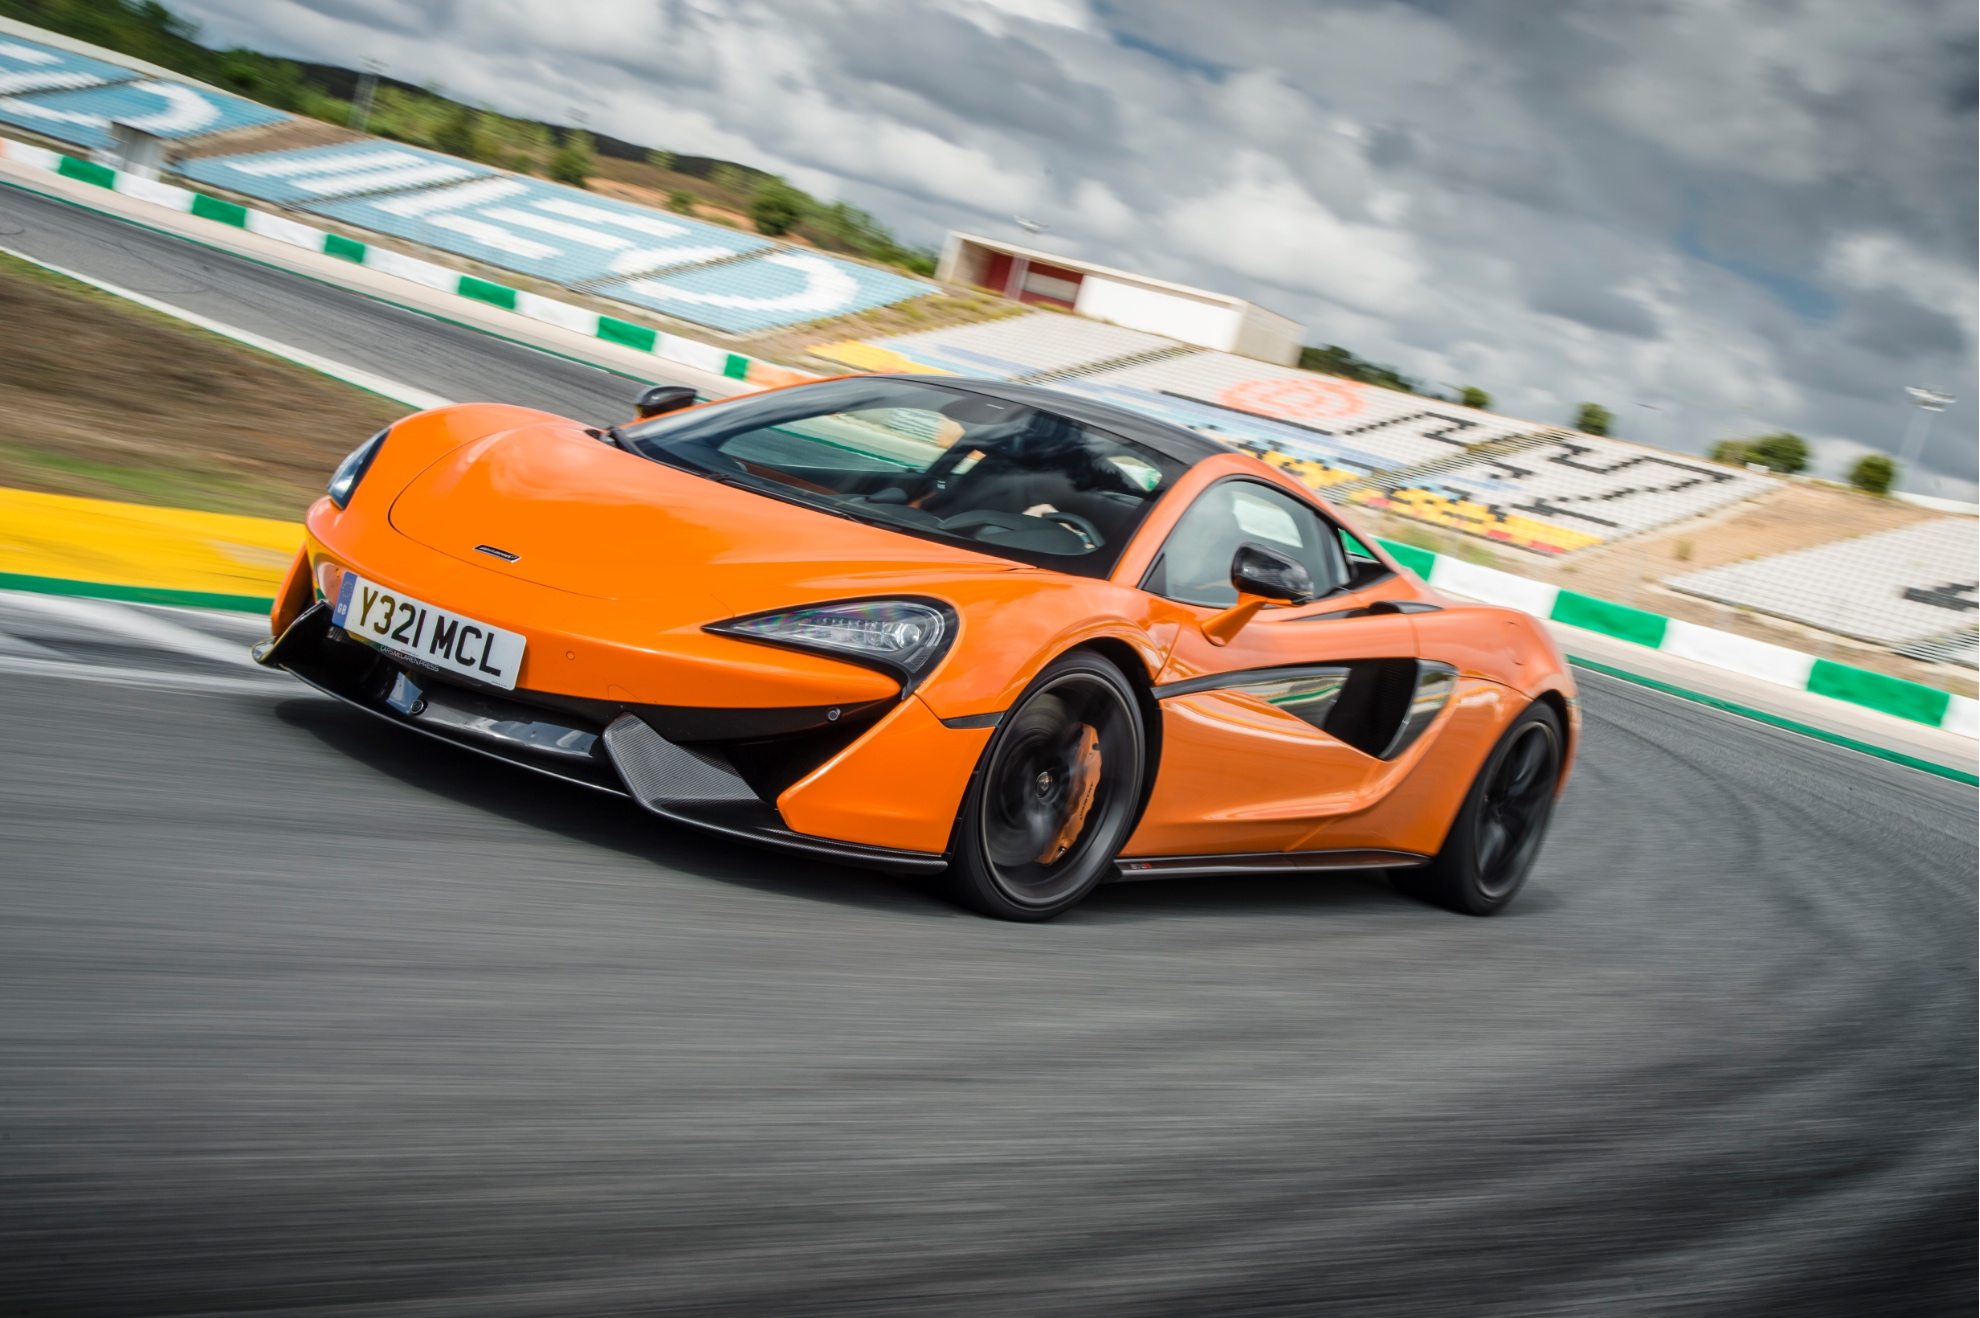 McLaren Will Boost and Cap Production at Around 3,3 Units/Year